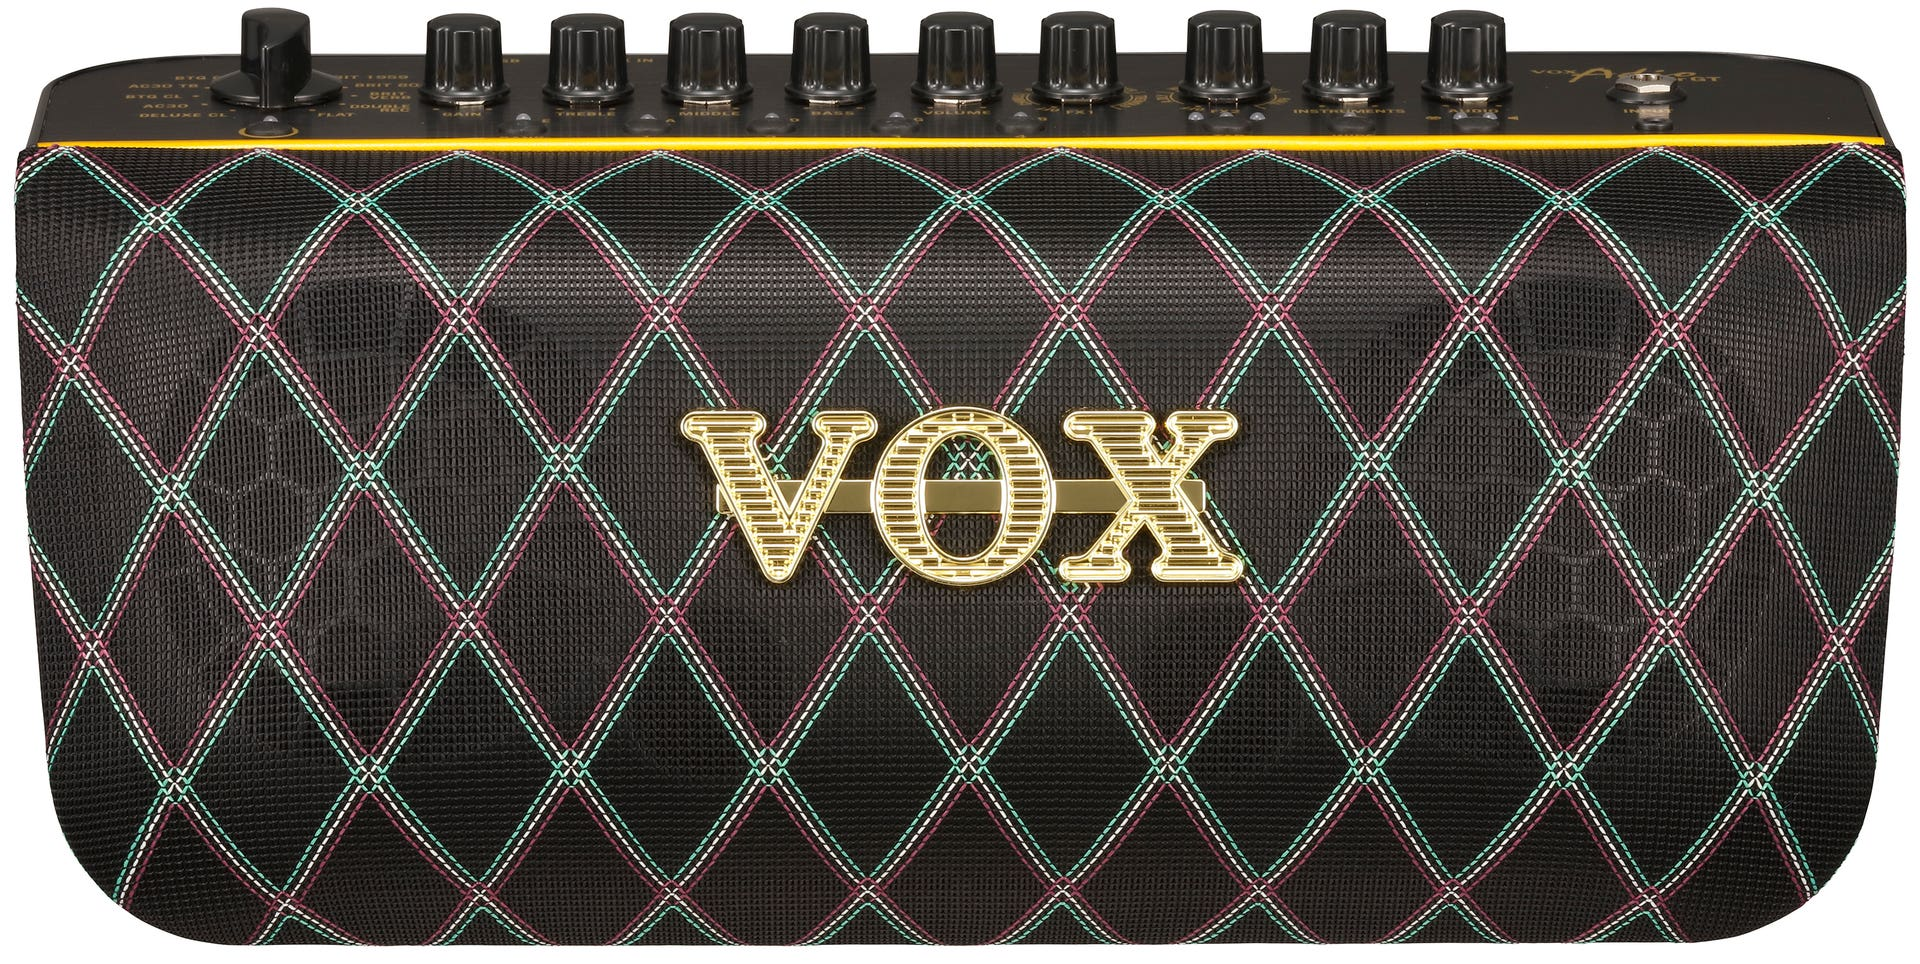 Vox Adio Air GT Guitar and Audio Amplifier